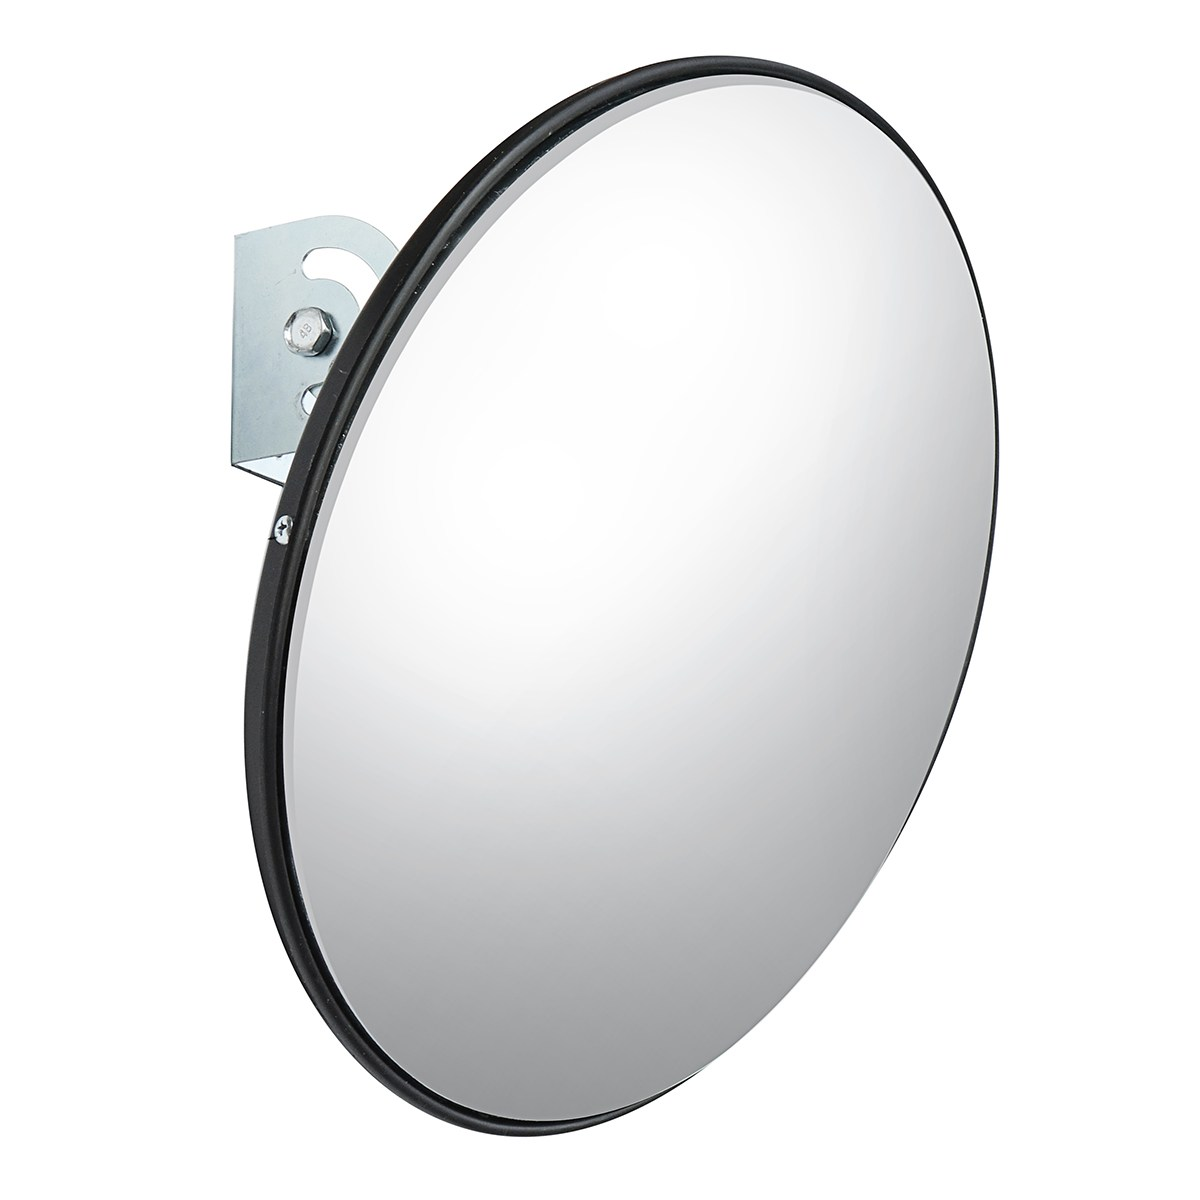 NEW 45 cm Wide Angle Curved Convex Security Road Mirror For Indoor Burglar Traffic Signal Roadway Safety<br>